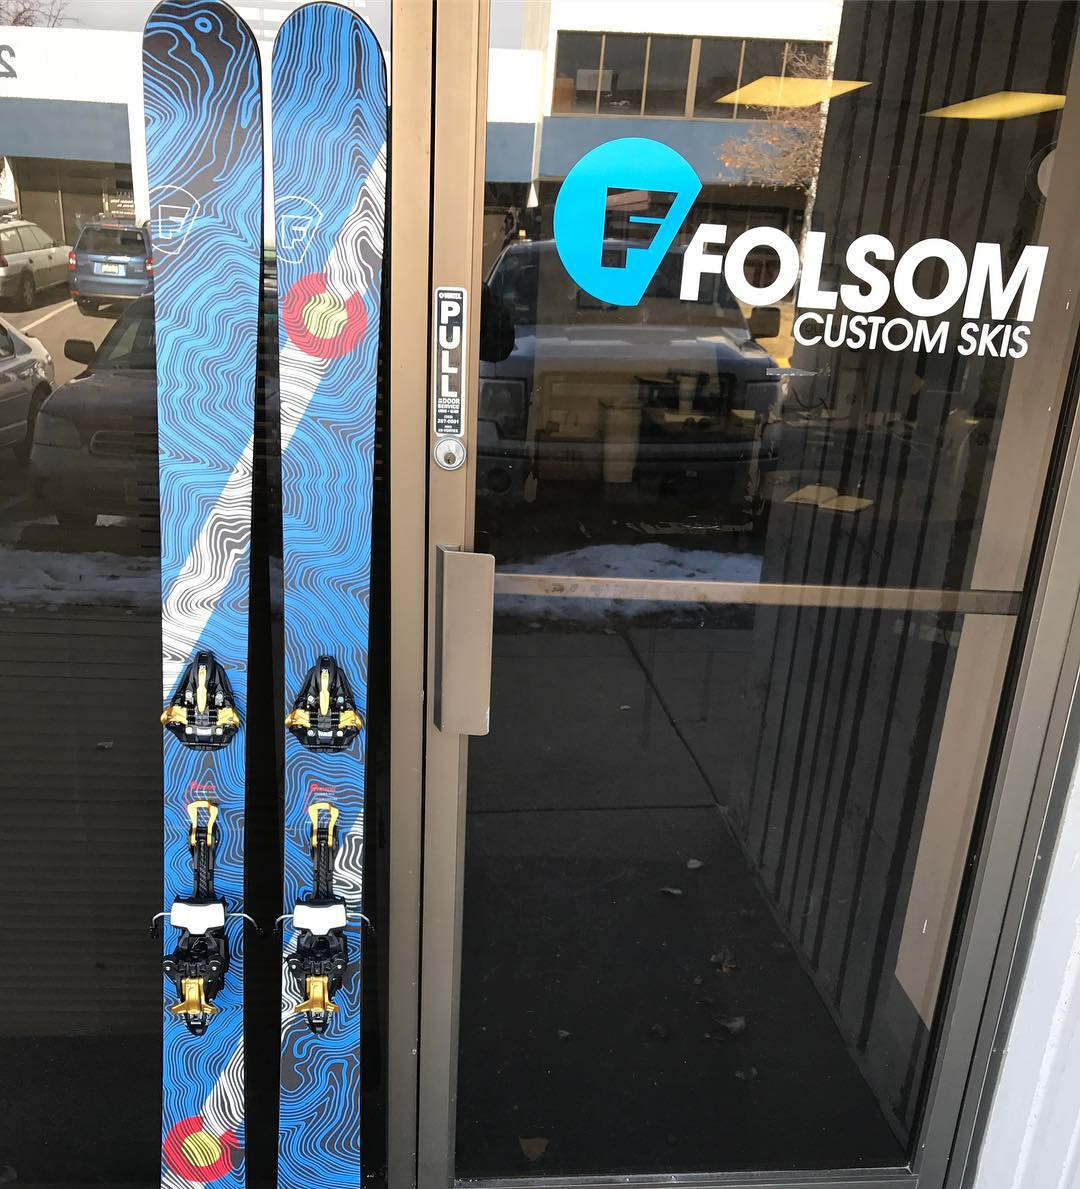 Bomber new touring setup for J. McKinley with graphics courtesy of @kinddesign. Come by the shop to get dialed in for the winter! #folsomskis #touring #skiuphill #earnyourturns #primary #kinddesign